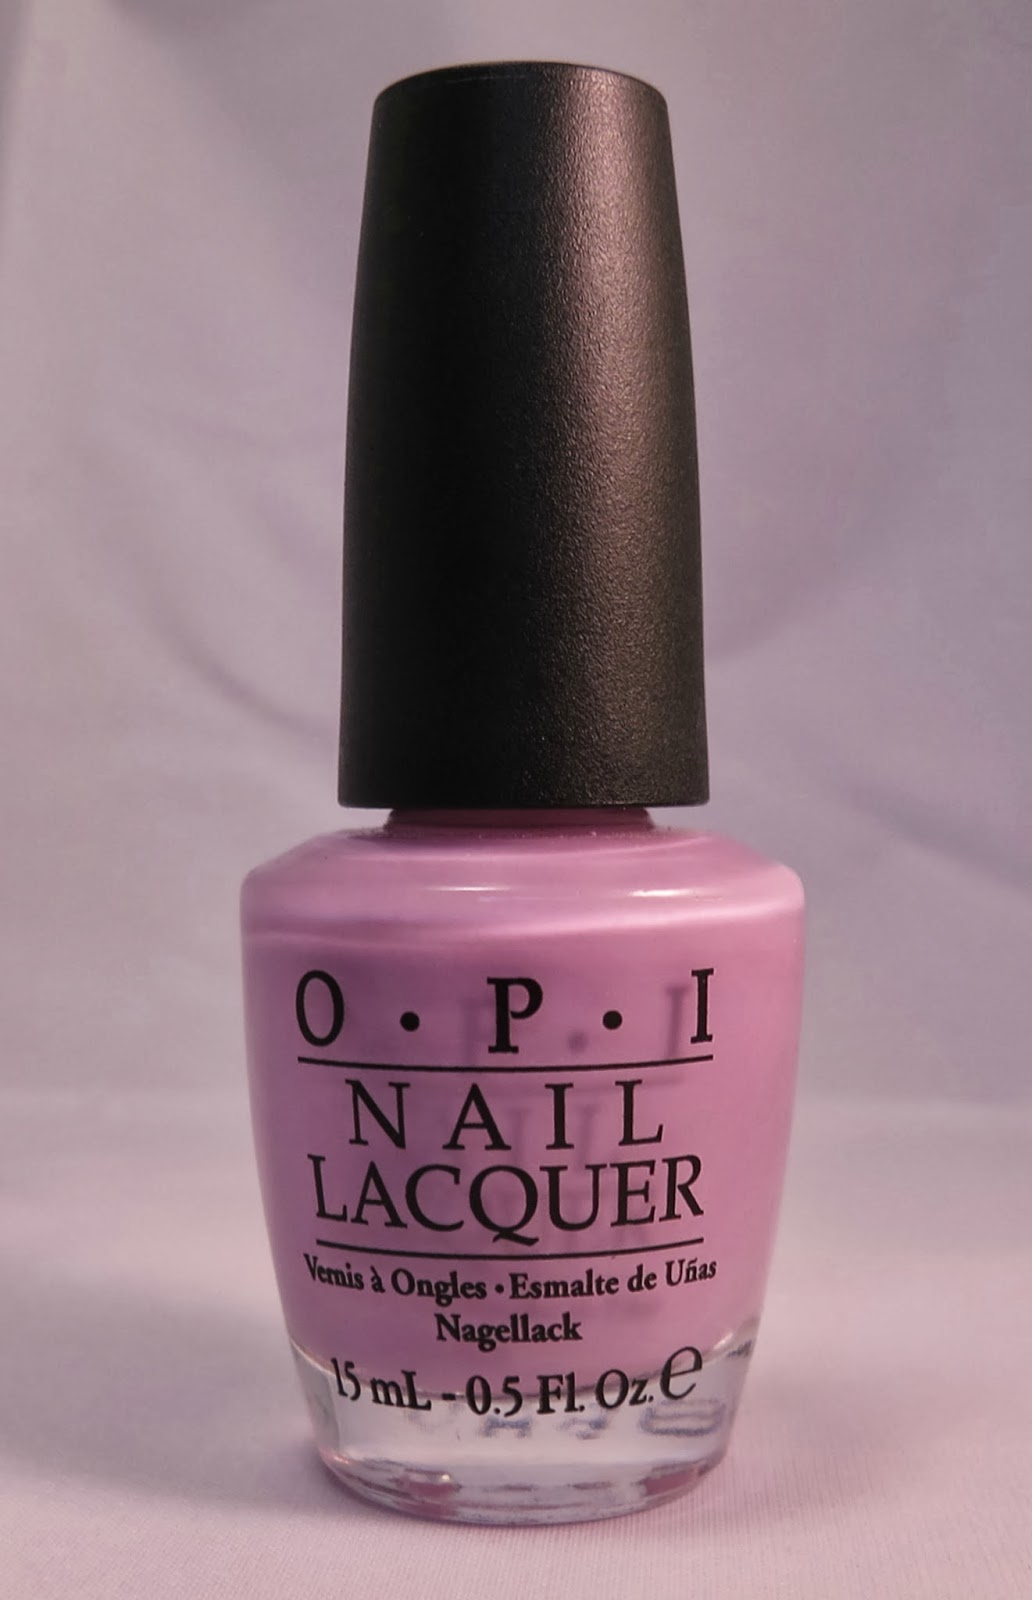 OPI lucky lucky lavender, Michelle Louise Love